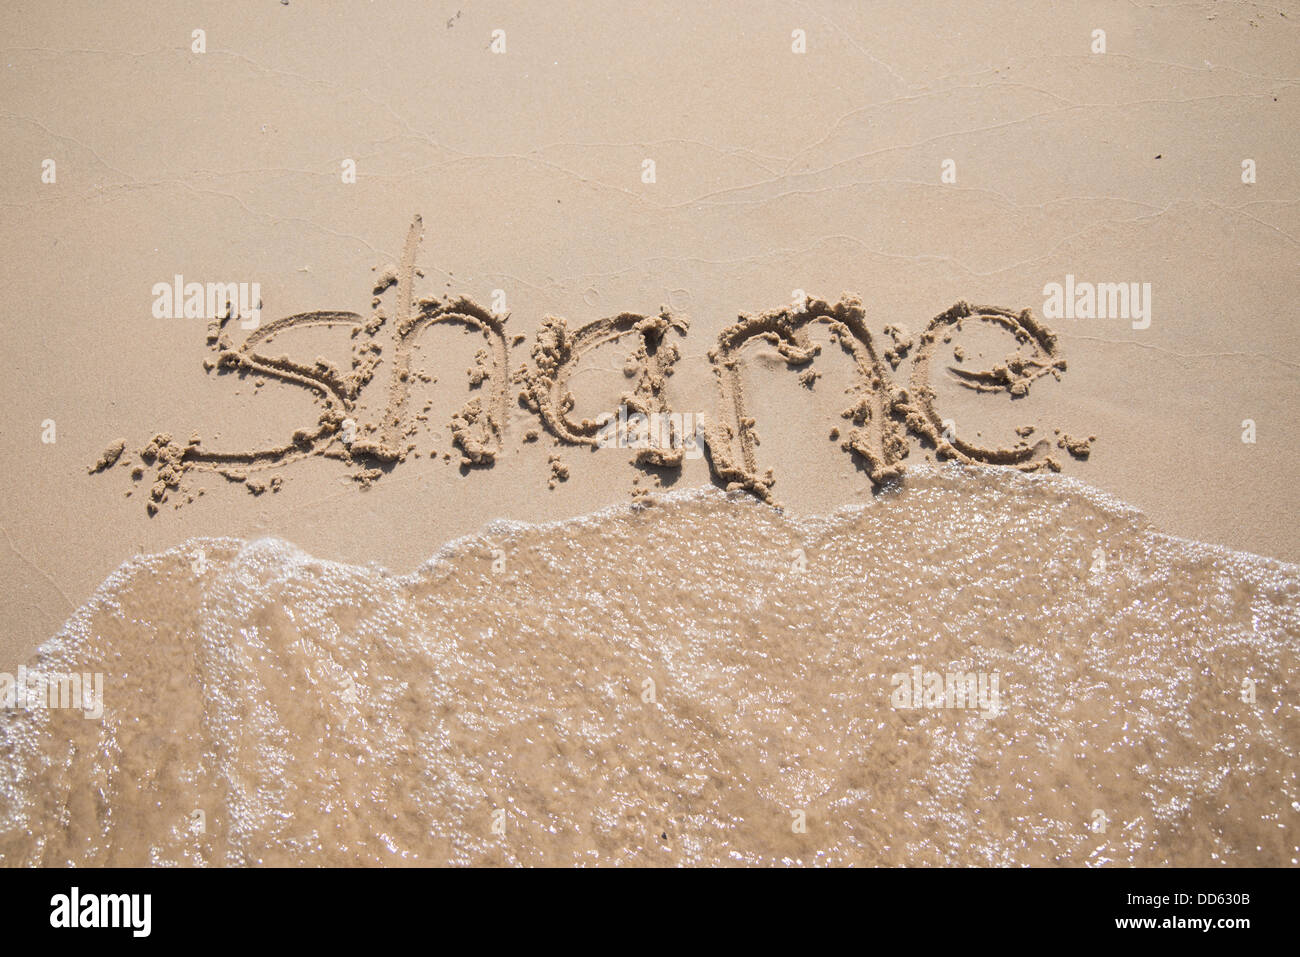 The word 'shame' written in the sand, being washed away by a wave. - Stock Image